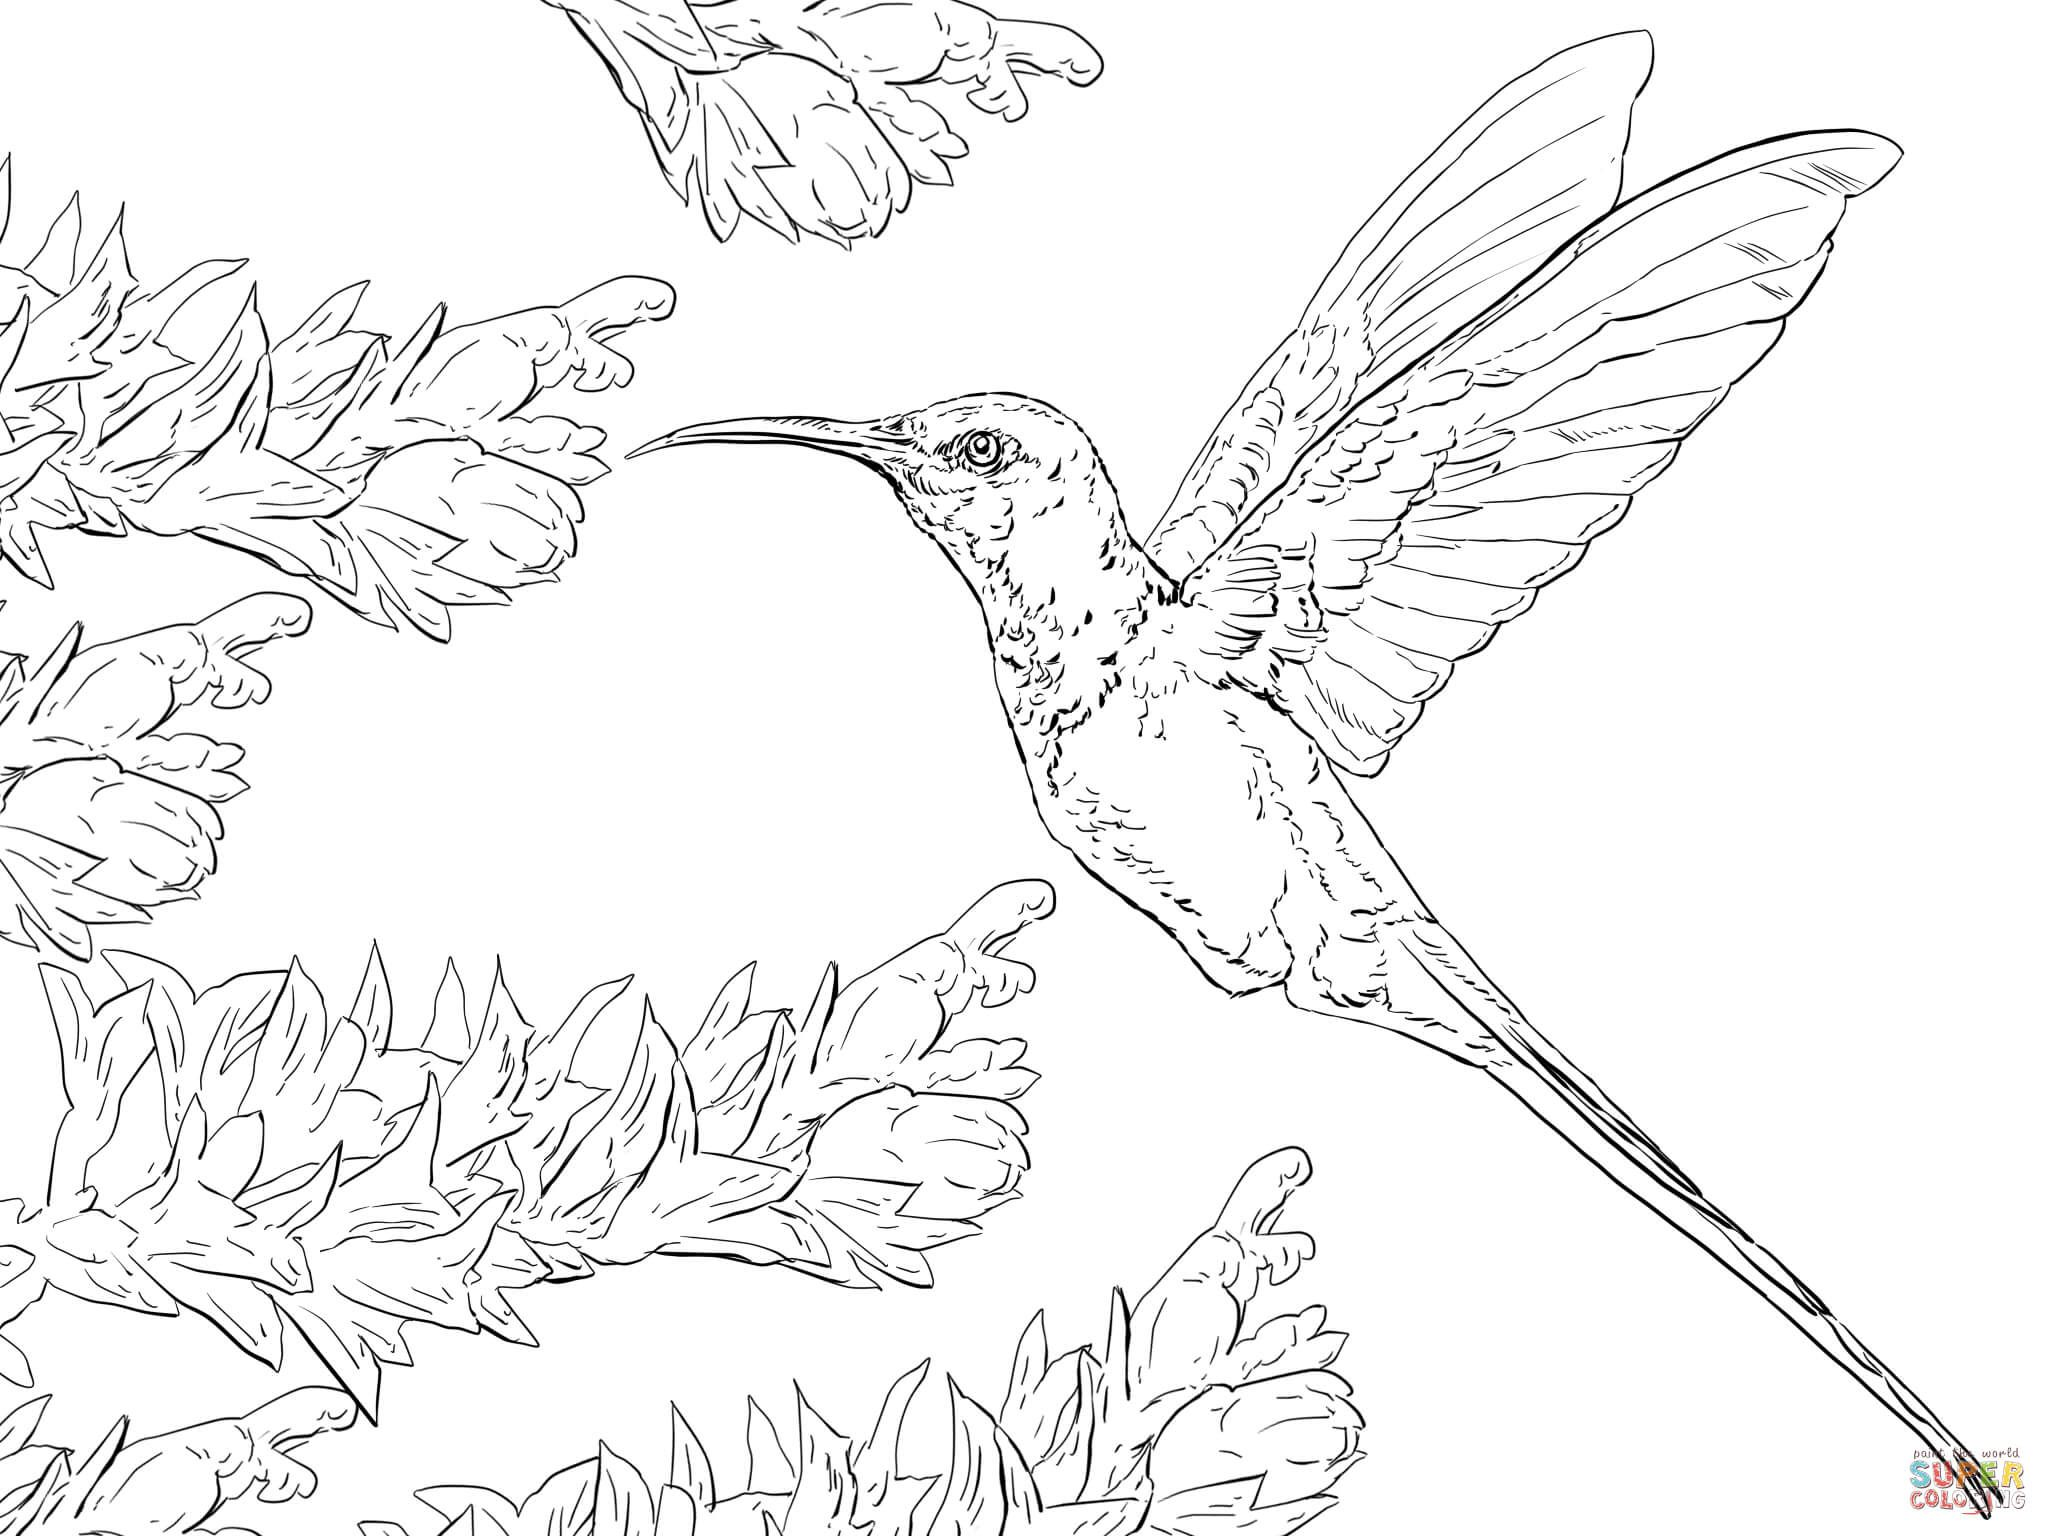 Coloring pages for donna flor - Swallow Tail Hummingbird Coloring Page From Hummingbirds Category Select From 24848 Printable Crafts Of Cartoons Nature Animals Bible And Many More